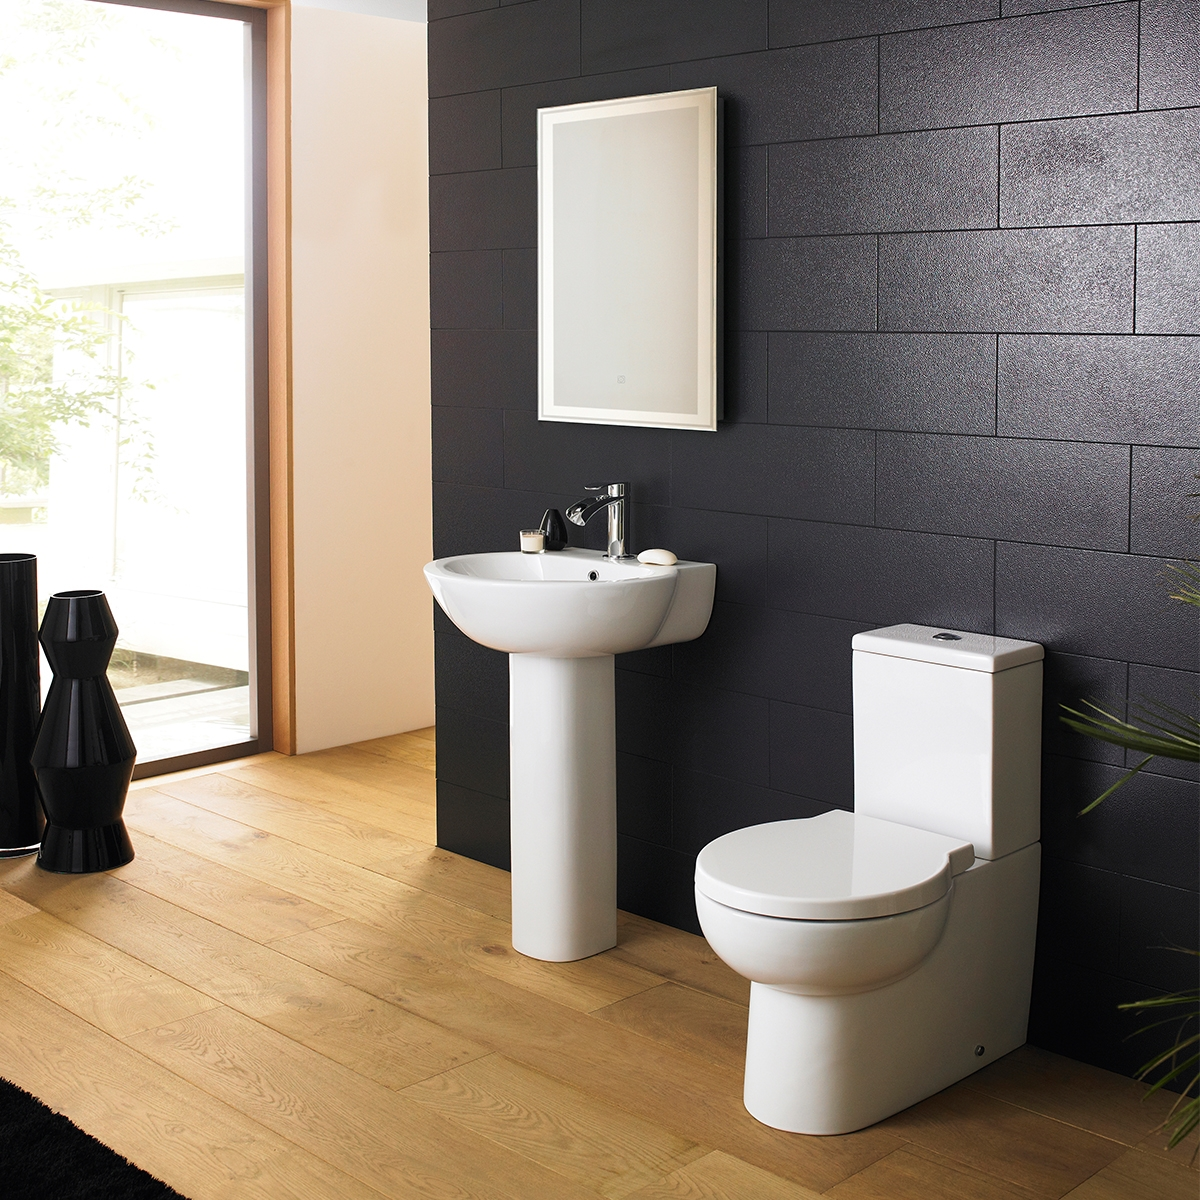 Premier Darwin Close Coupled Toilet with Push Button Cistern - Soft Close Seat